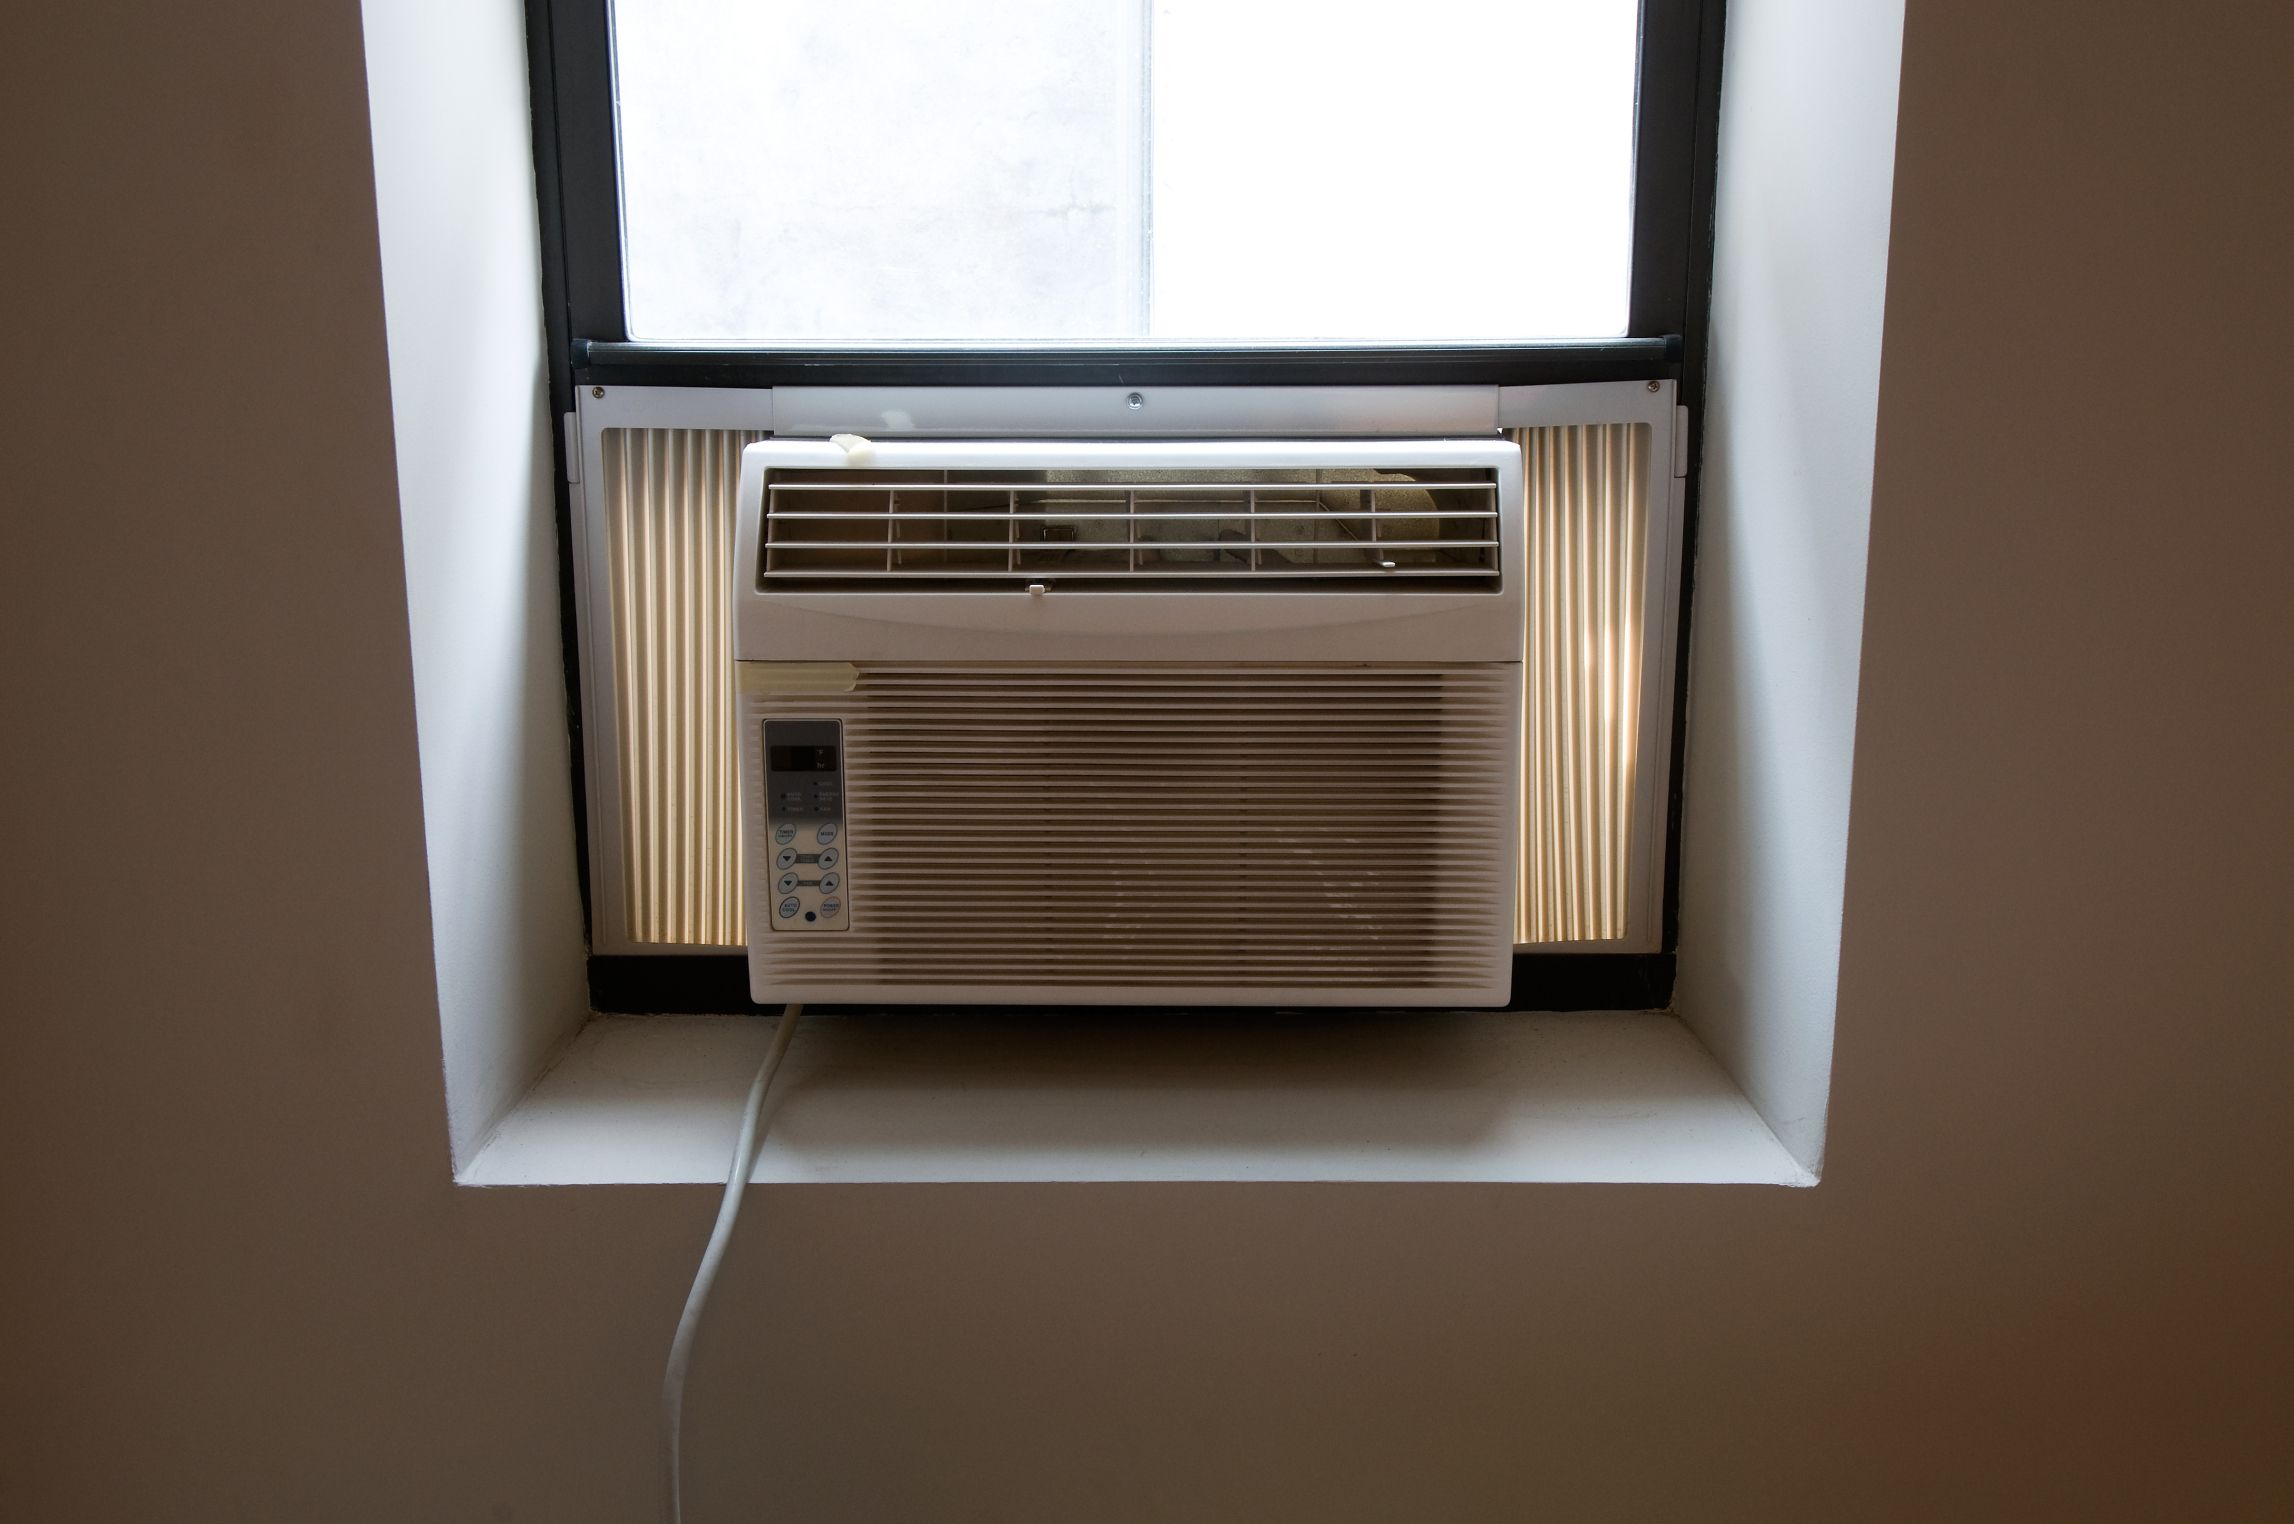 How To Clean The Filter On A Frigidaire Air Conditioner Hunker Window Air Conditioner Frigidaire Air Conditioner Window Unit Air Conditioners